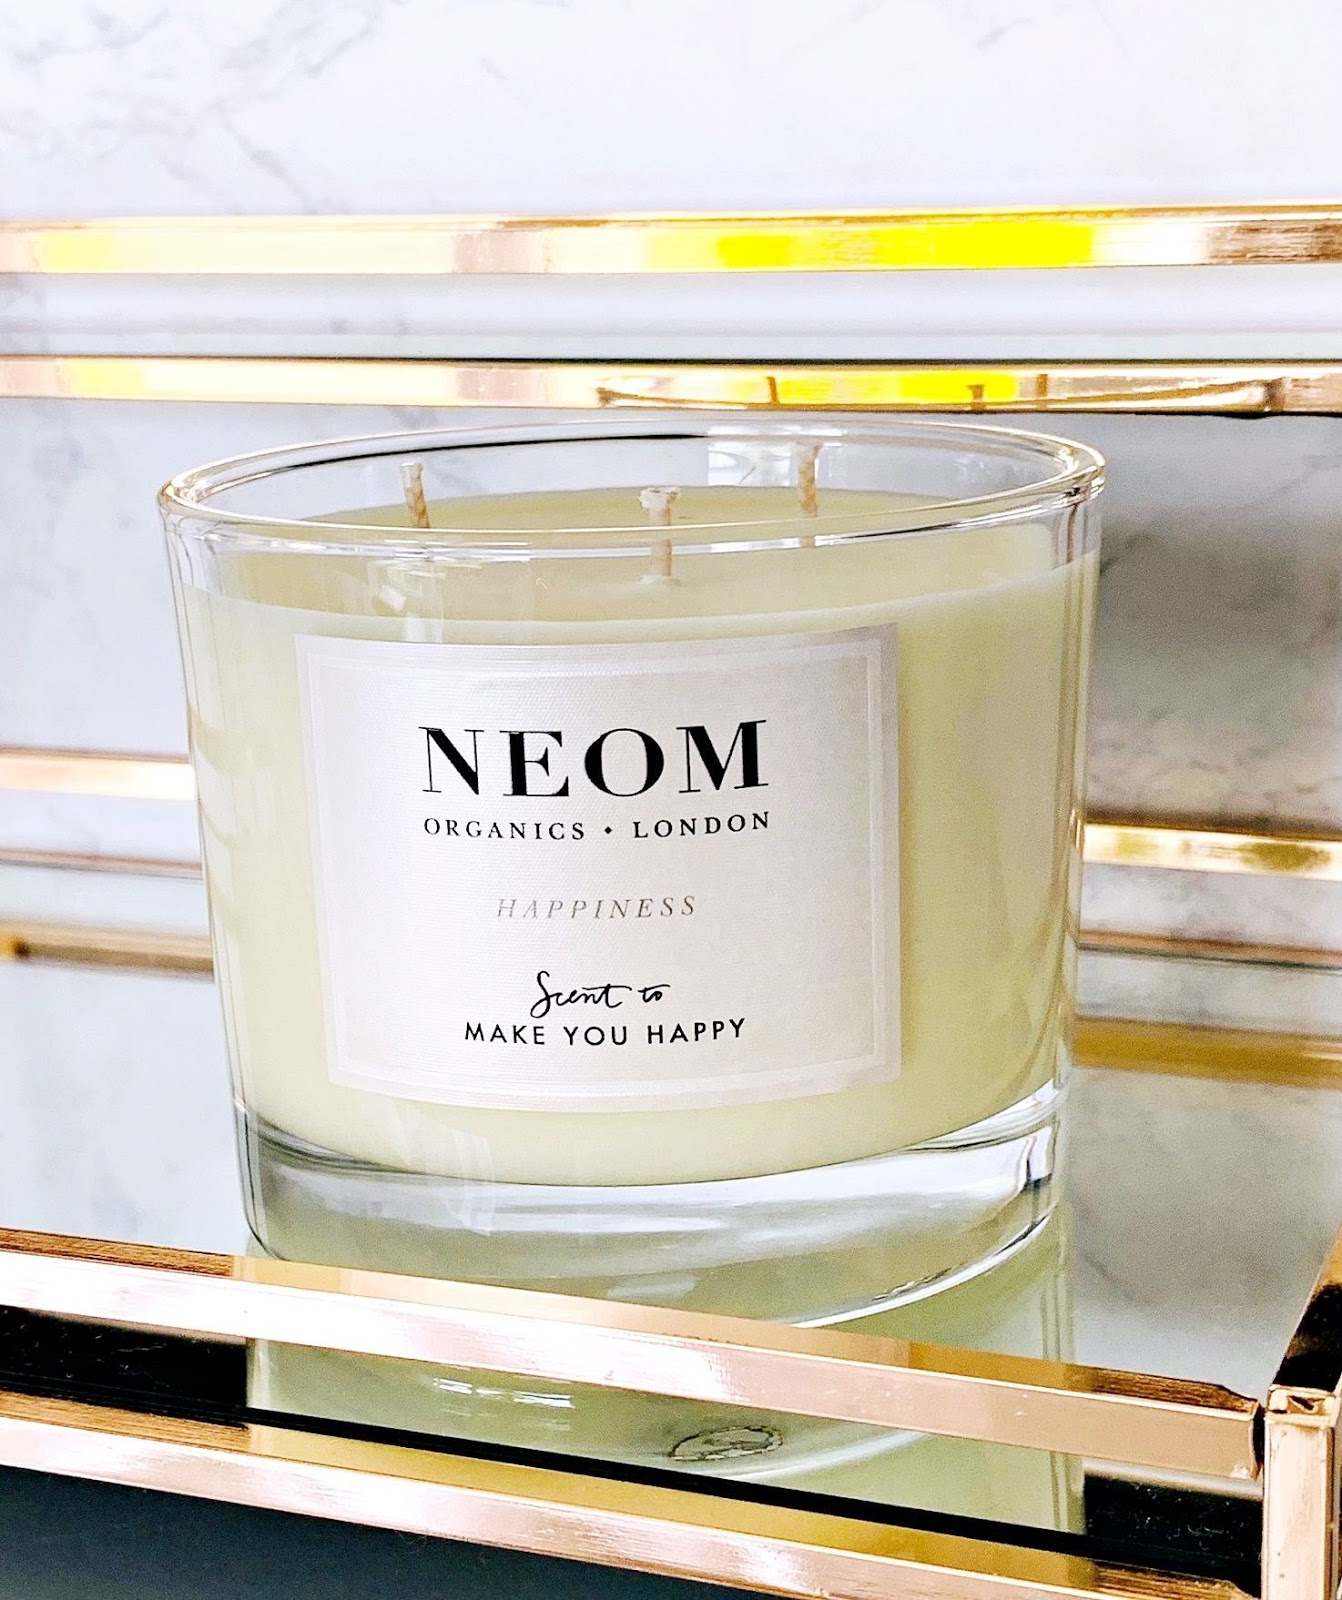 Neom Happiness Candle review & discount code